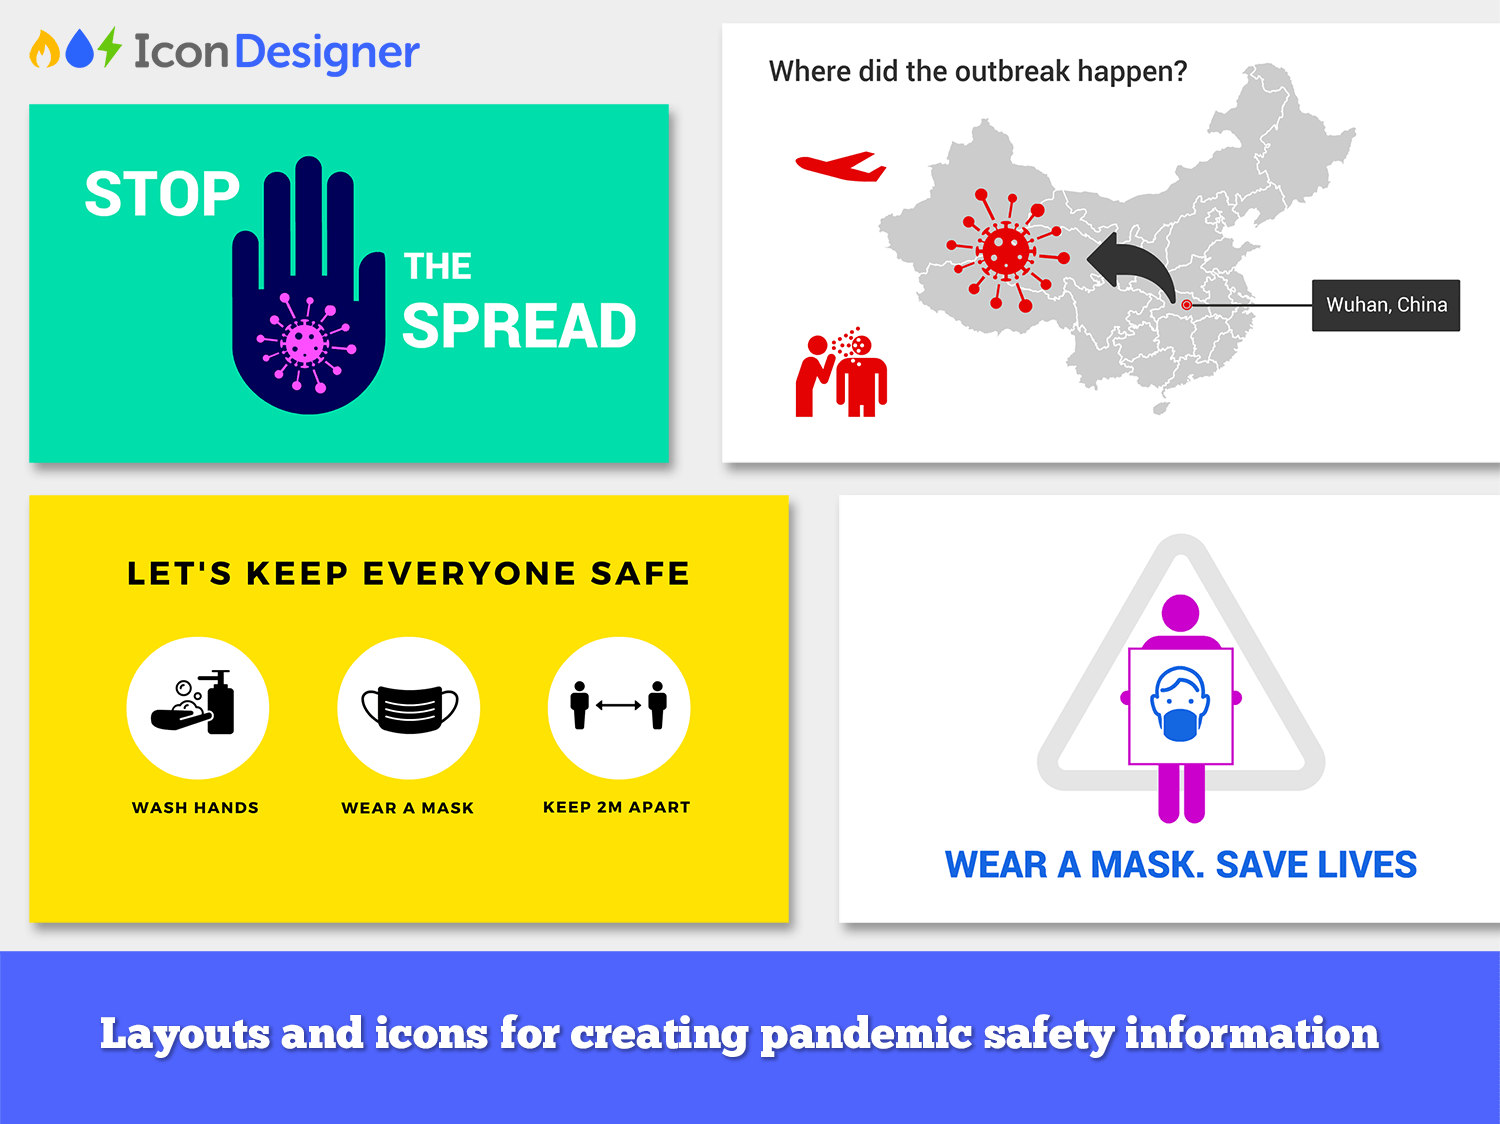 iconDesigner-pandemic-coronavirus-covid19-icons-ppe-safety-graphics-design-it-yourself